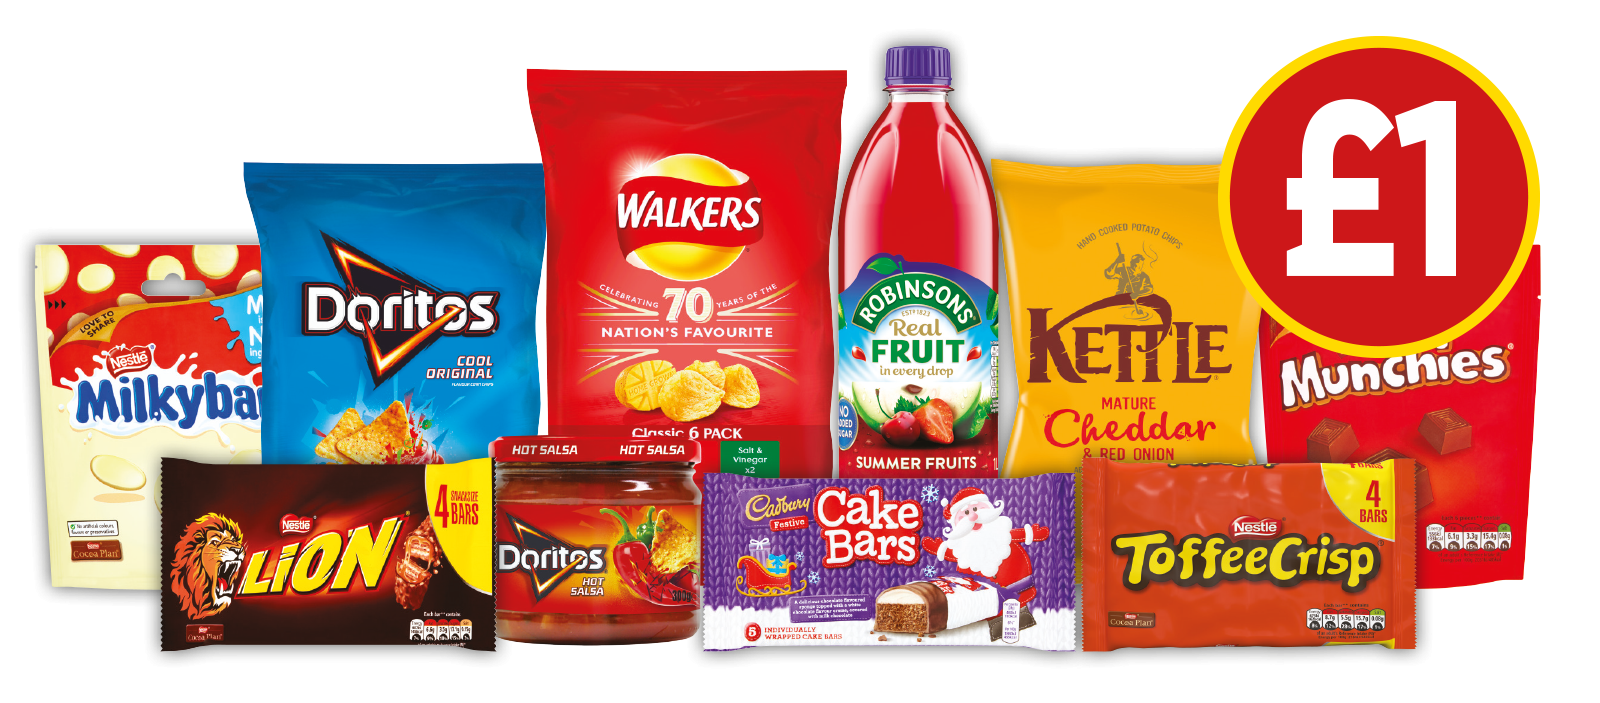 £1 DEALS: Toffee Crisp, Lion Bar, Milkybar, Munchies, Doritos Hot Salsa Dip, Doritos Cool Original, Kettle Chips Cheddar & Red Onion and more - Now £1 at Budgens